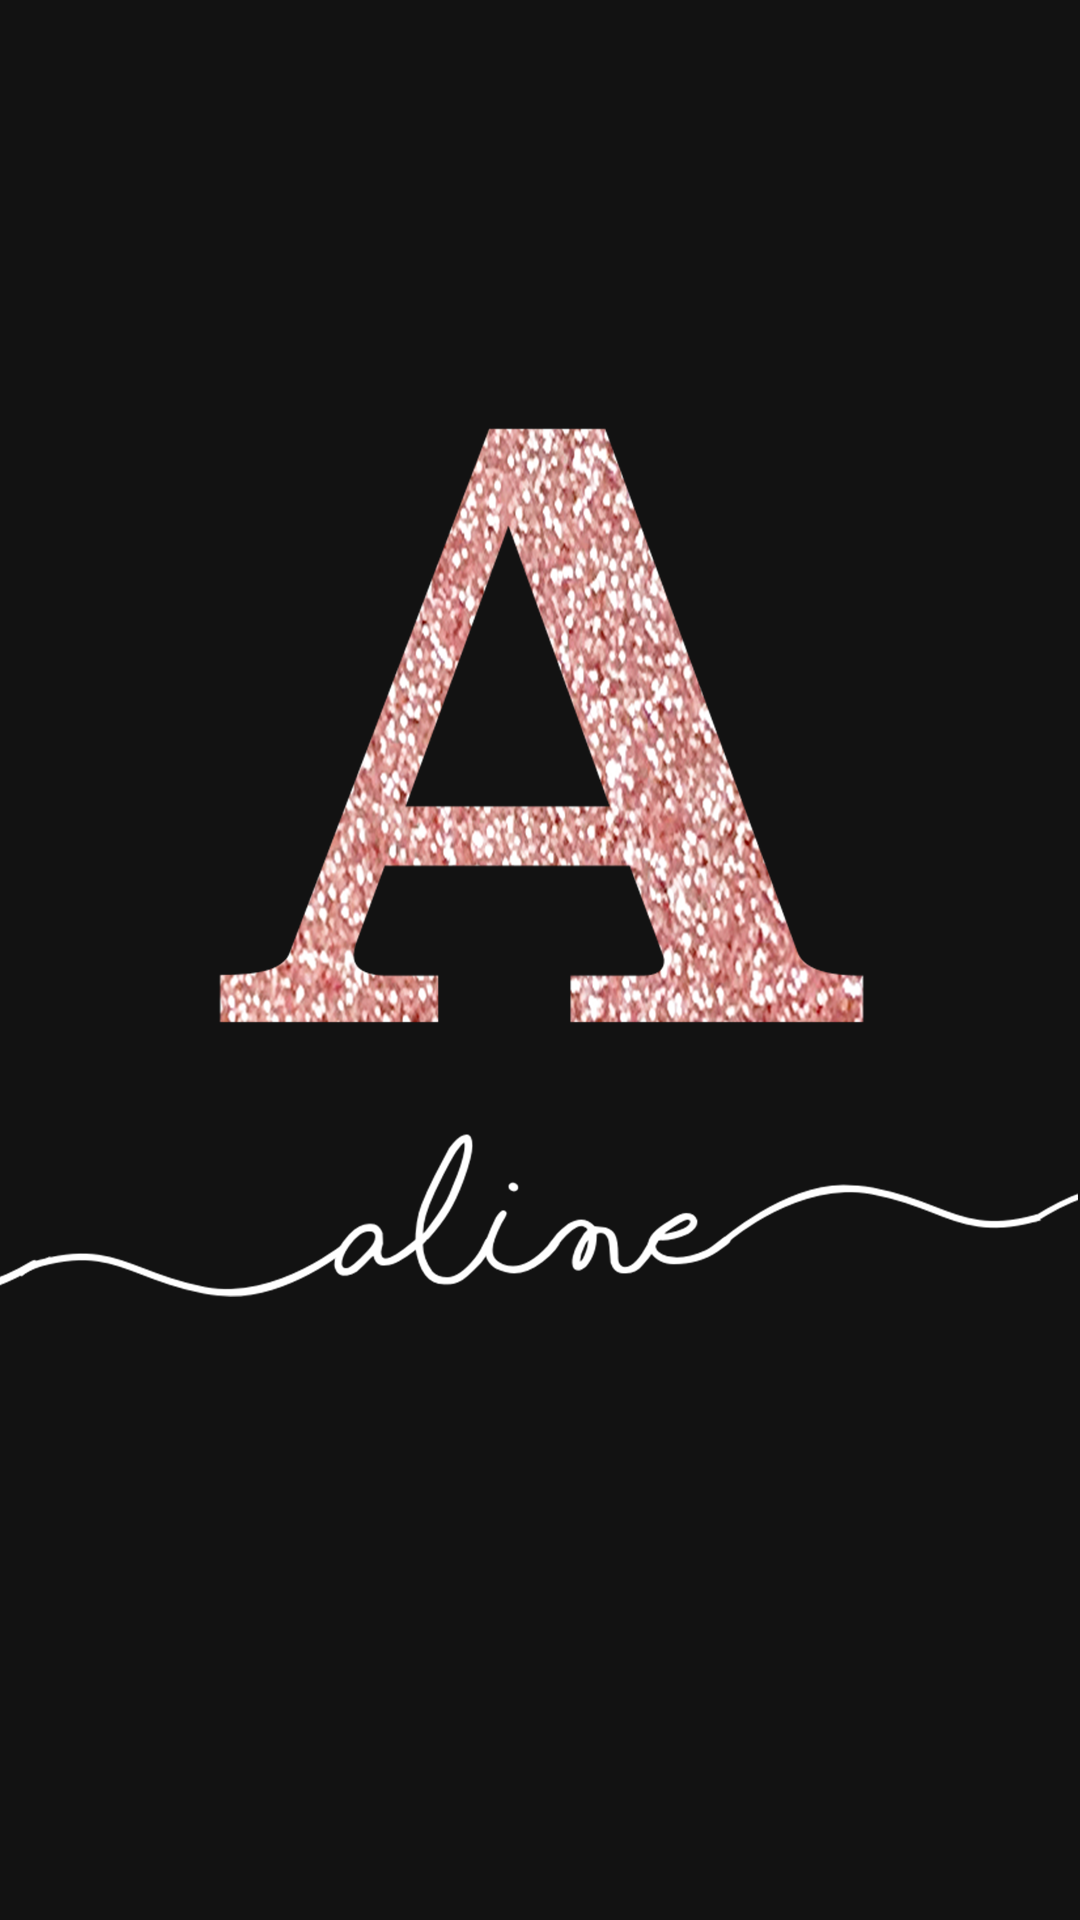 Wallpaper Aline Glitter Rosê by Gocase, glitter, nome, manuscrito, aline, gocase, lovegocase, wallpaper, name, fundo de tela, background, #lovegocase, #gocase, #wallpaper, #nome, #aline